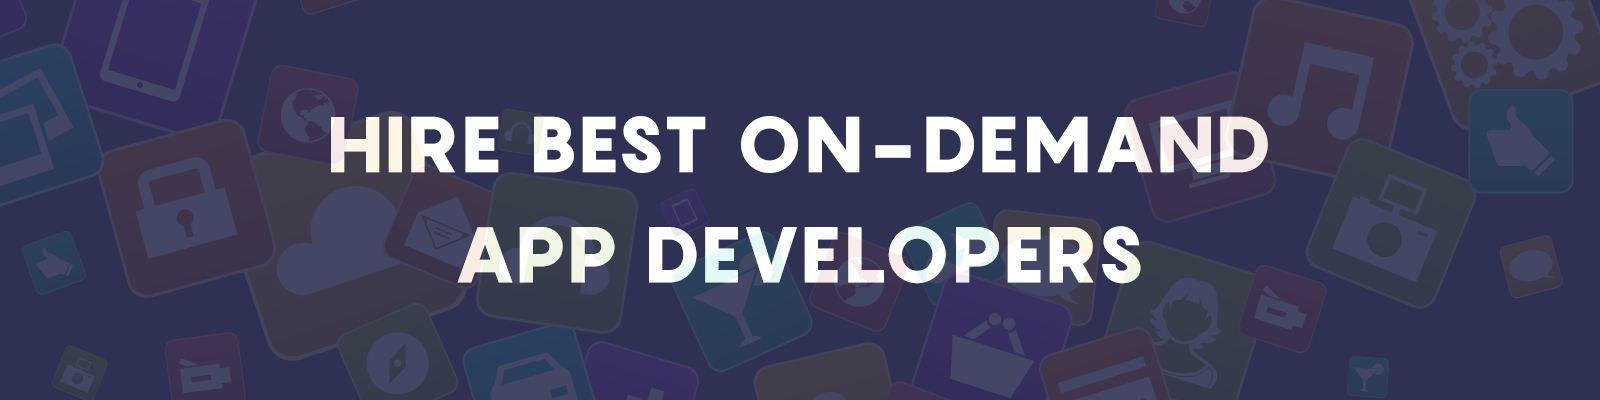 hire on-demand app developers